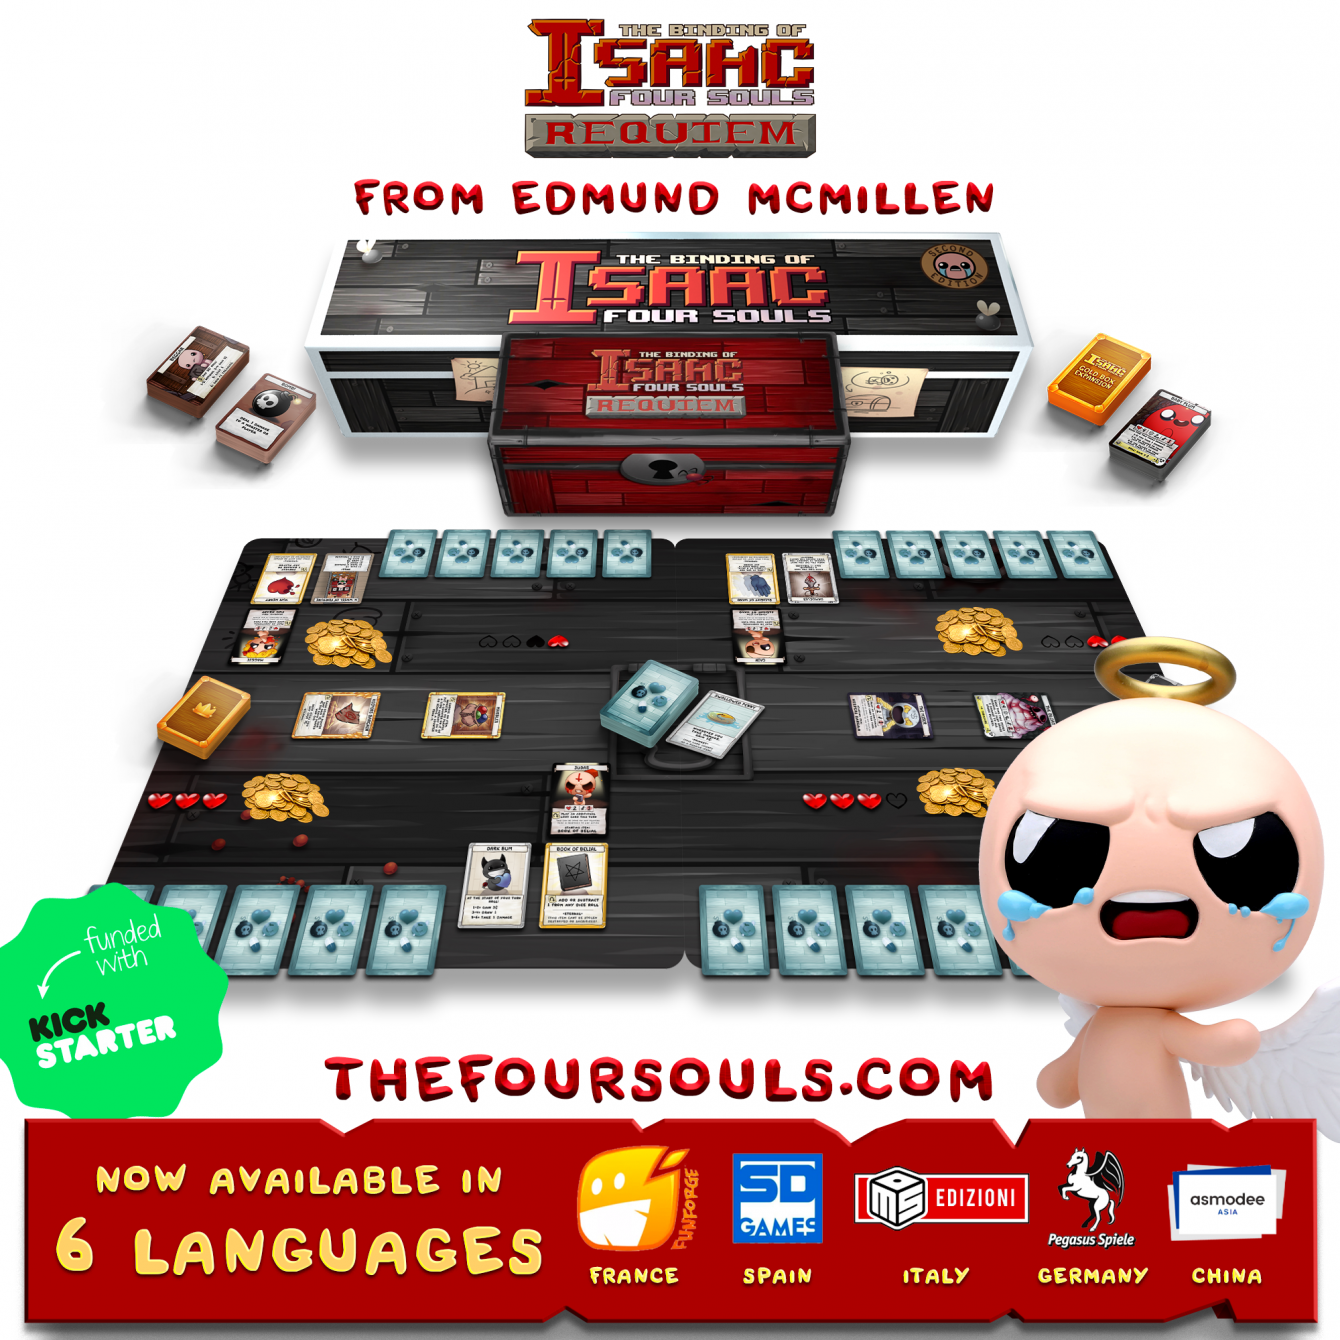 The Binding of Isaac: the board game arrives in Italian language!